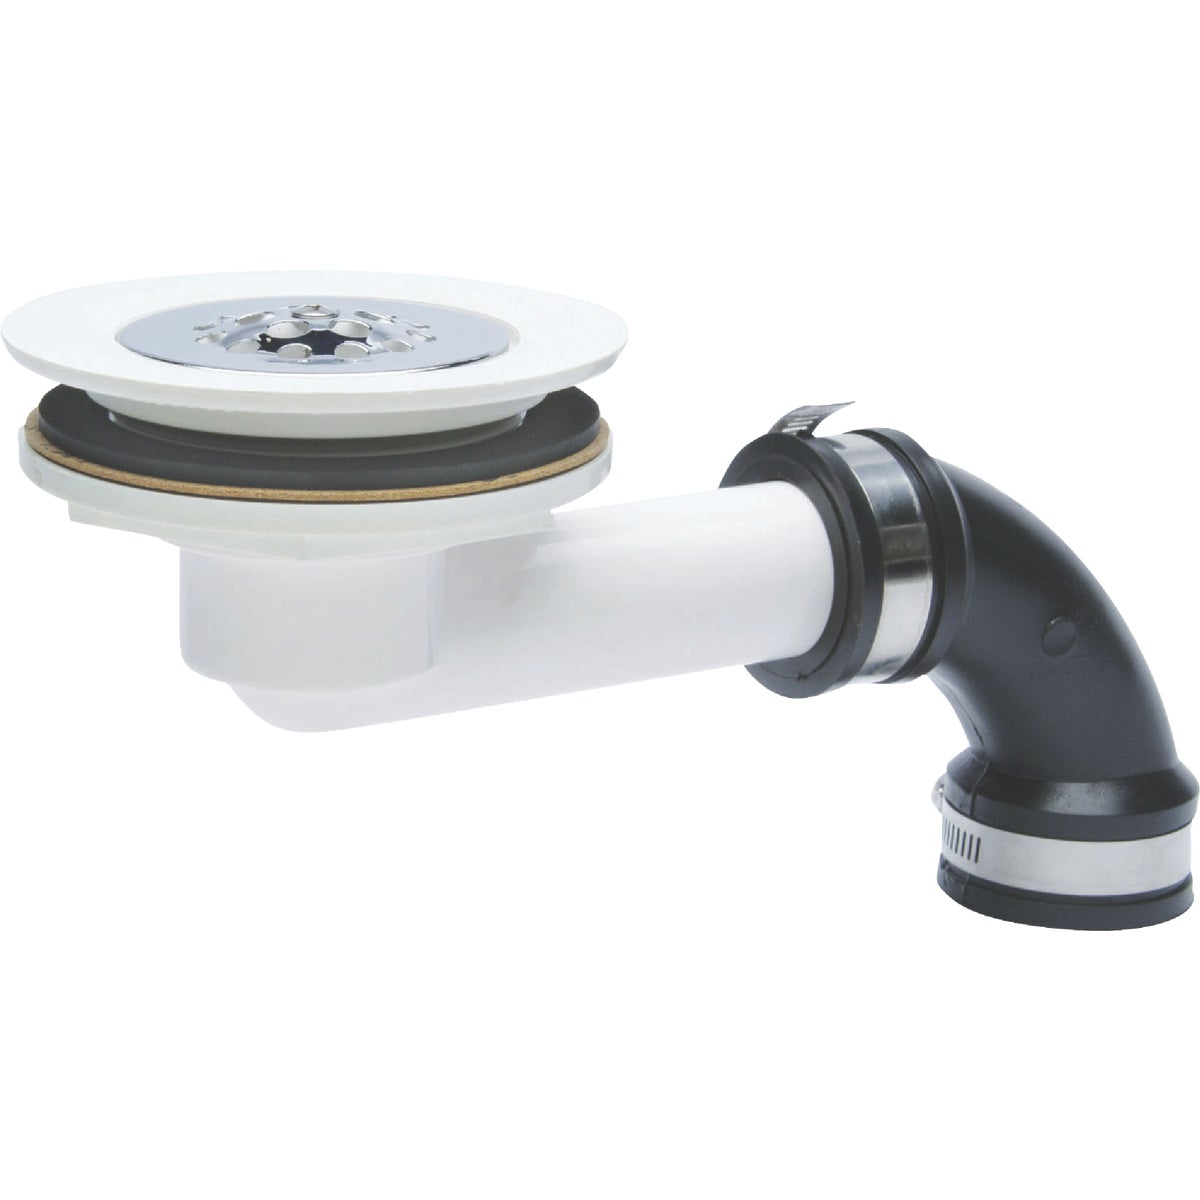 SHOWERTUB DRAIN KIT - 60.300AK by E L Mustee